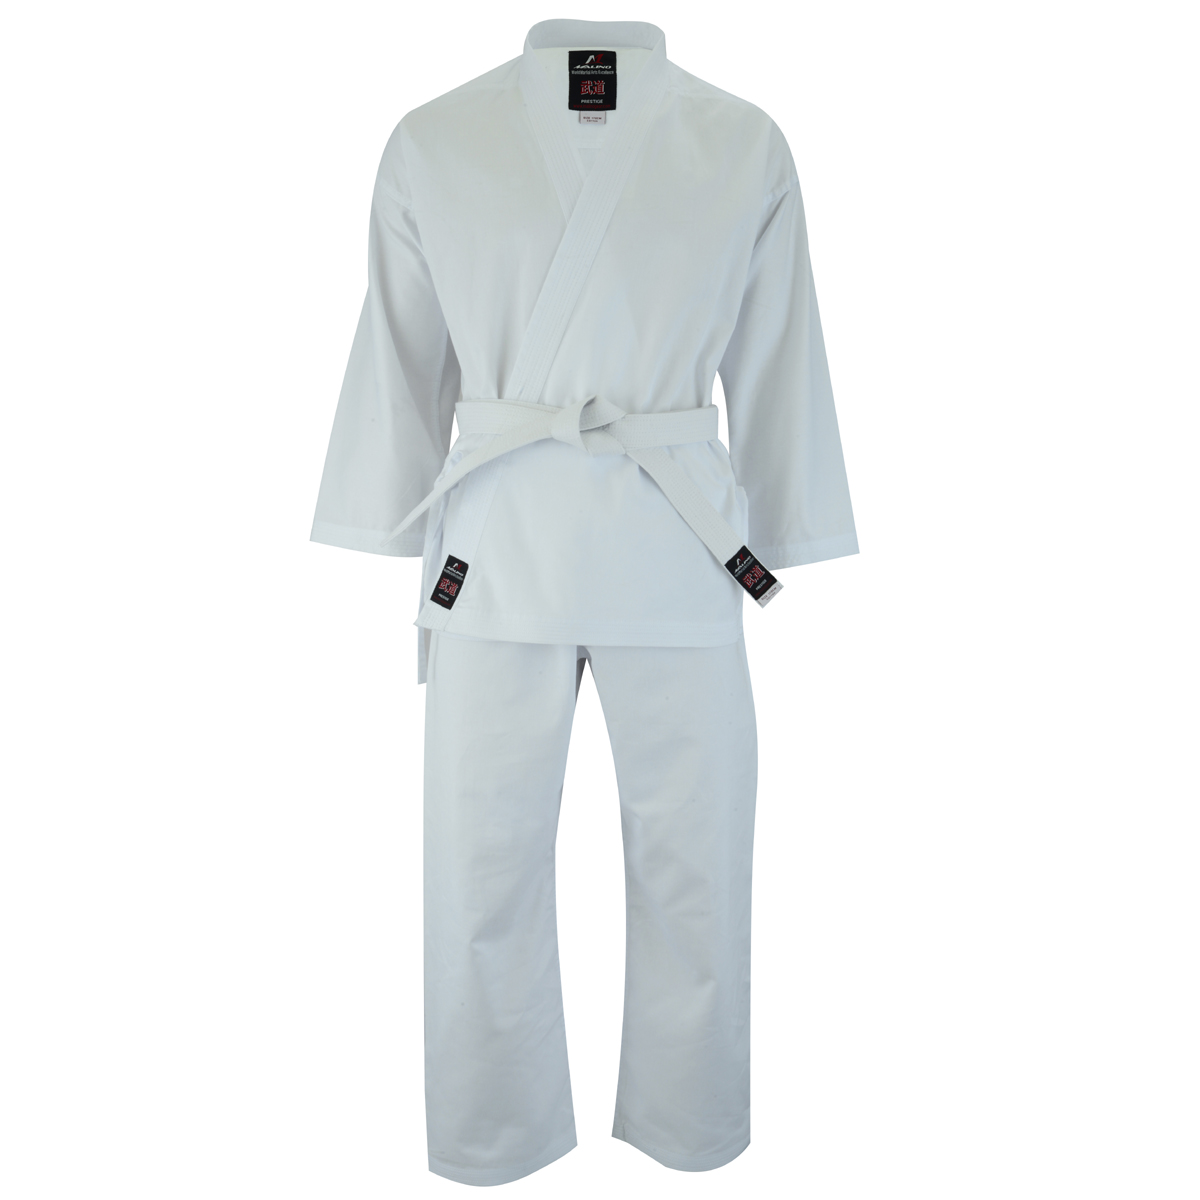 Middleweight Adult Student Karate Suit Cotton White - 8oz